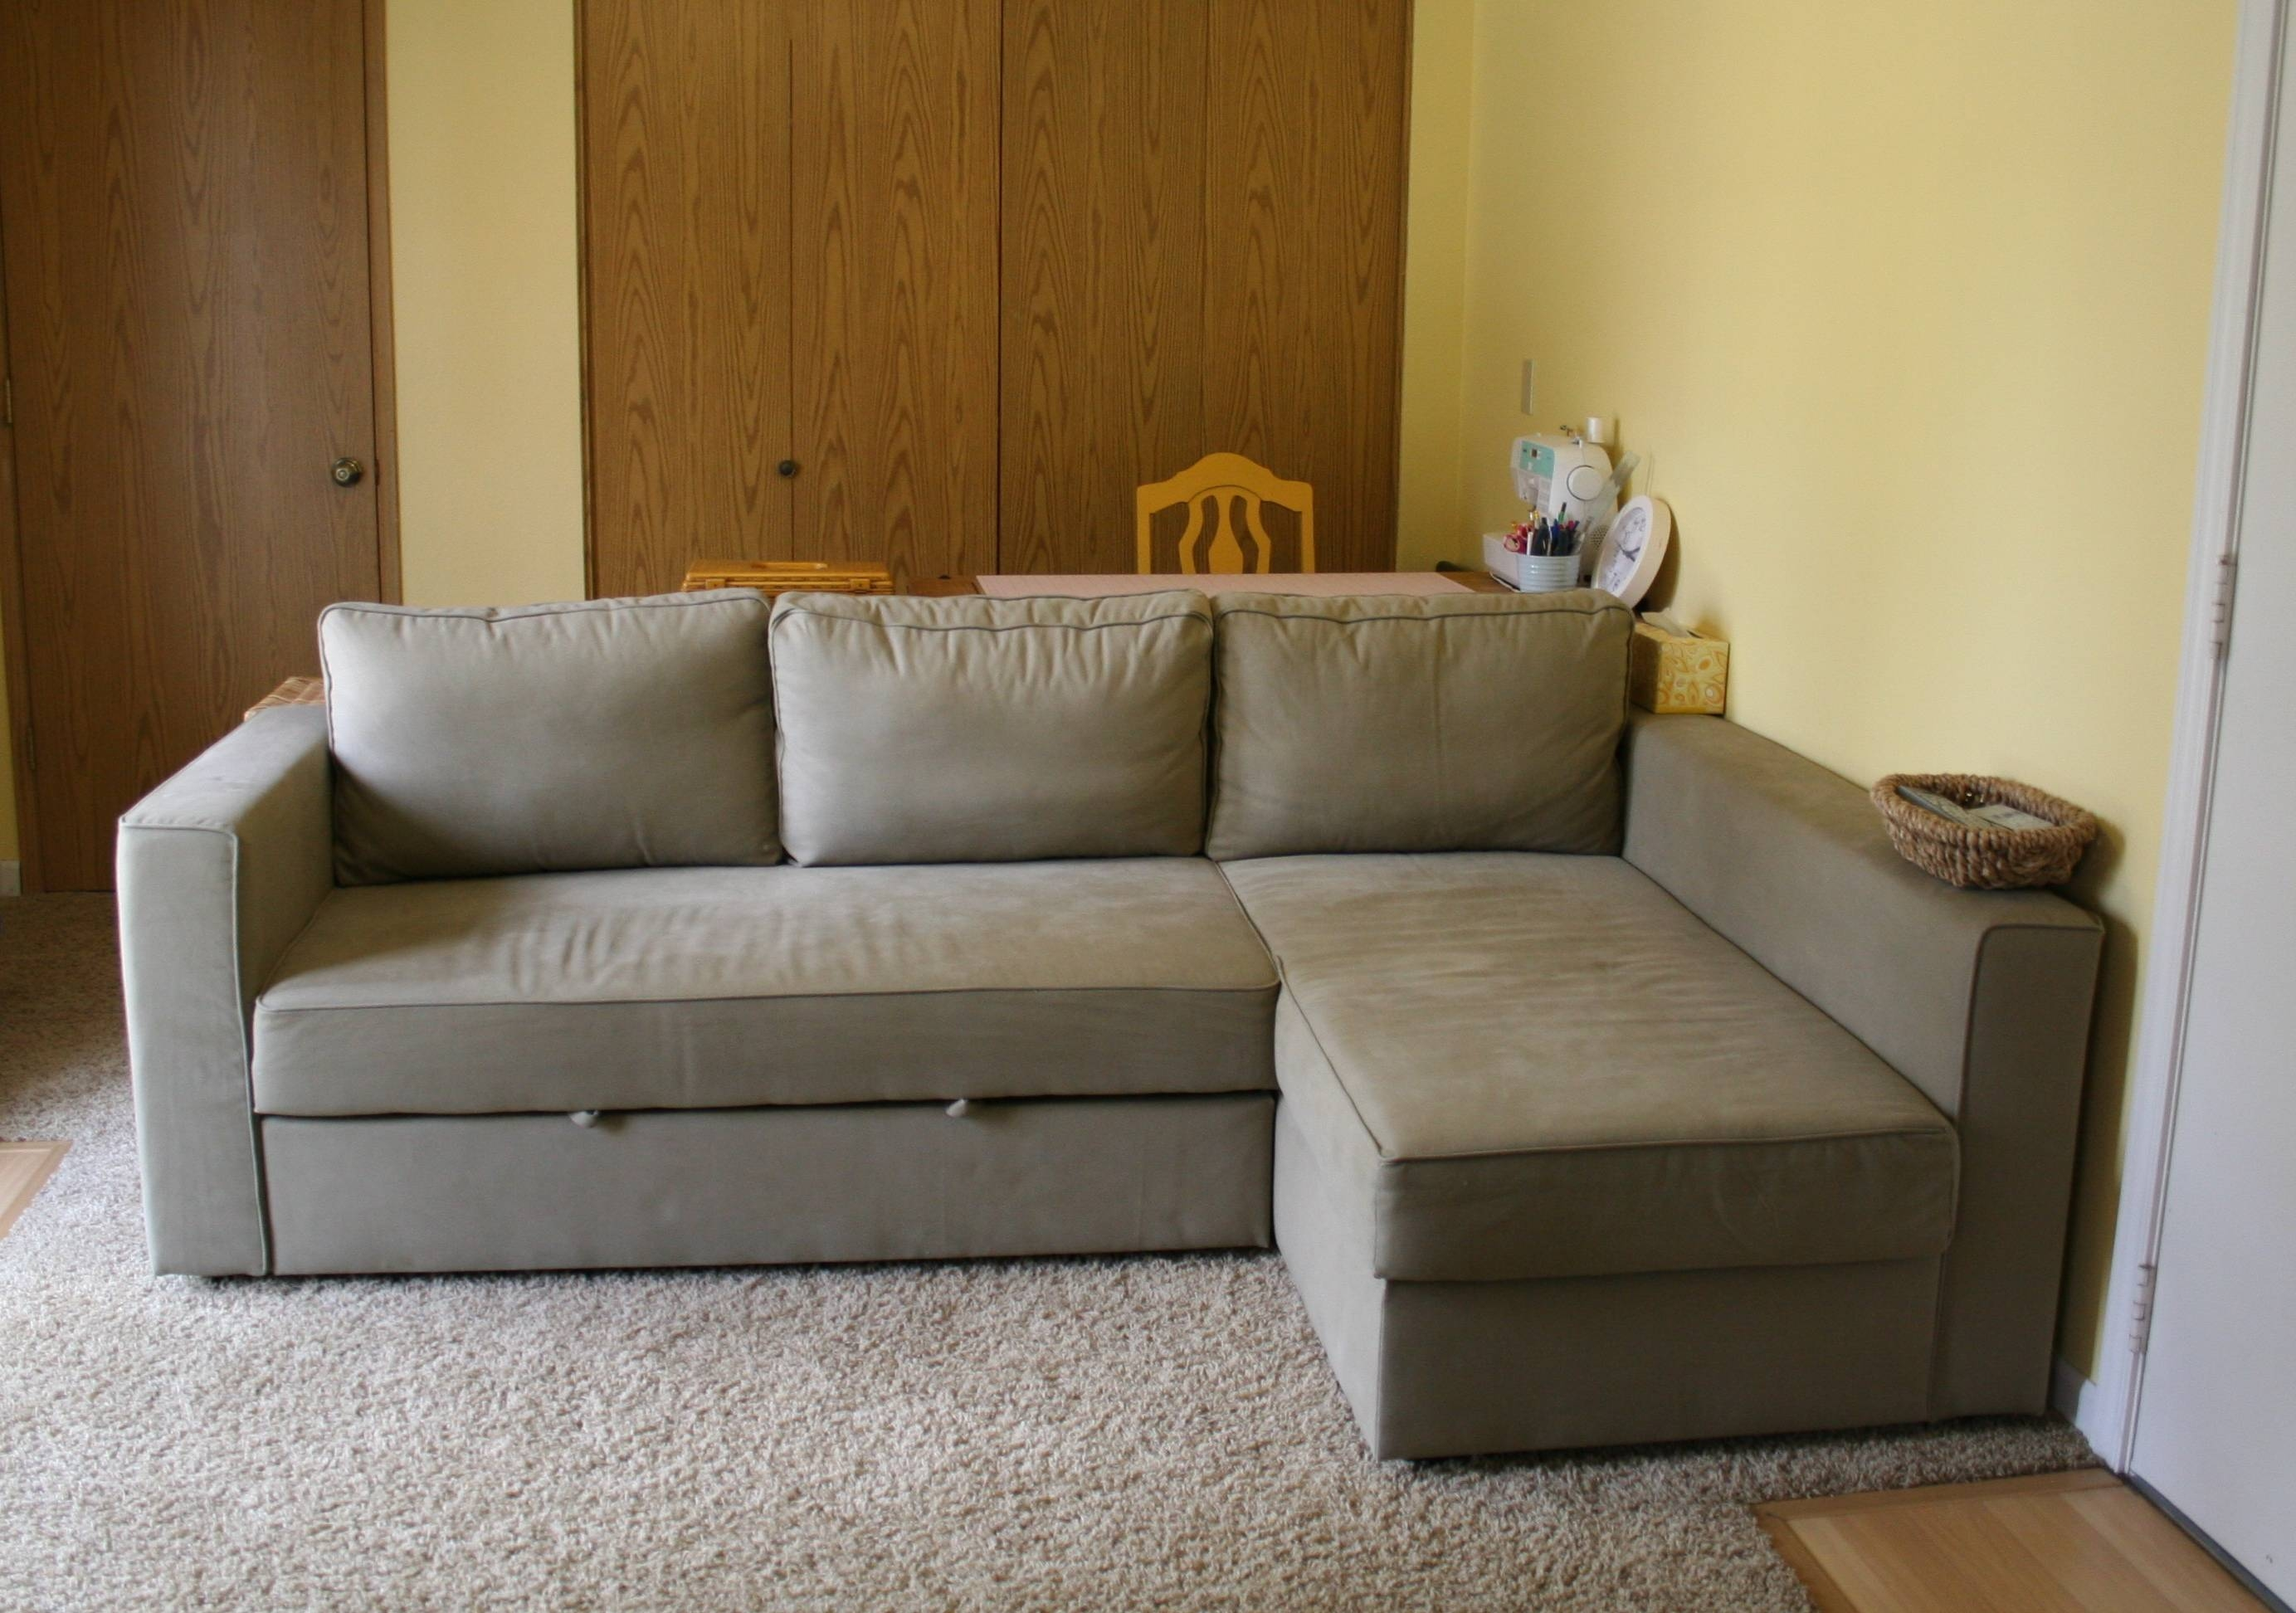 Furniture: Sectional Sleeper Sofa | Small Sectional Couch inside Sleeper Sofa Sectional Ikea (Image 11 of 25)